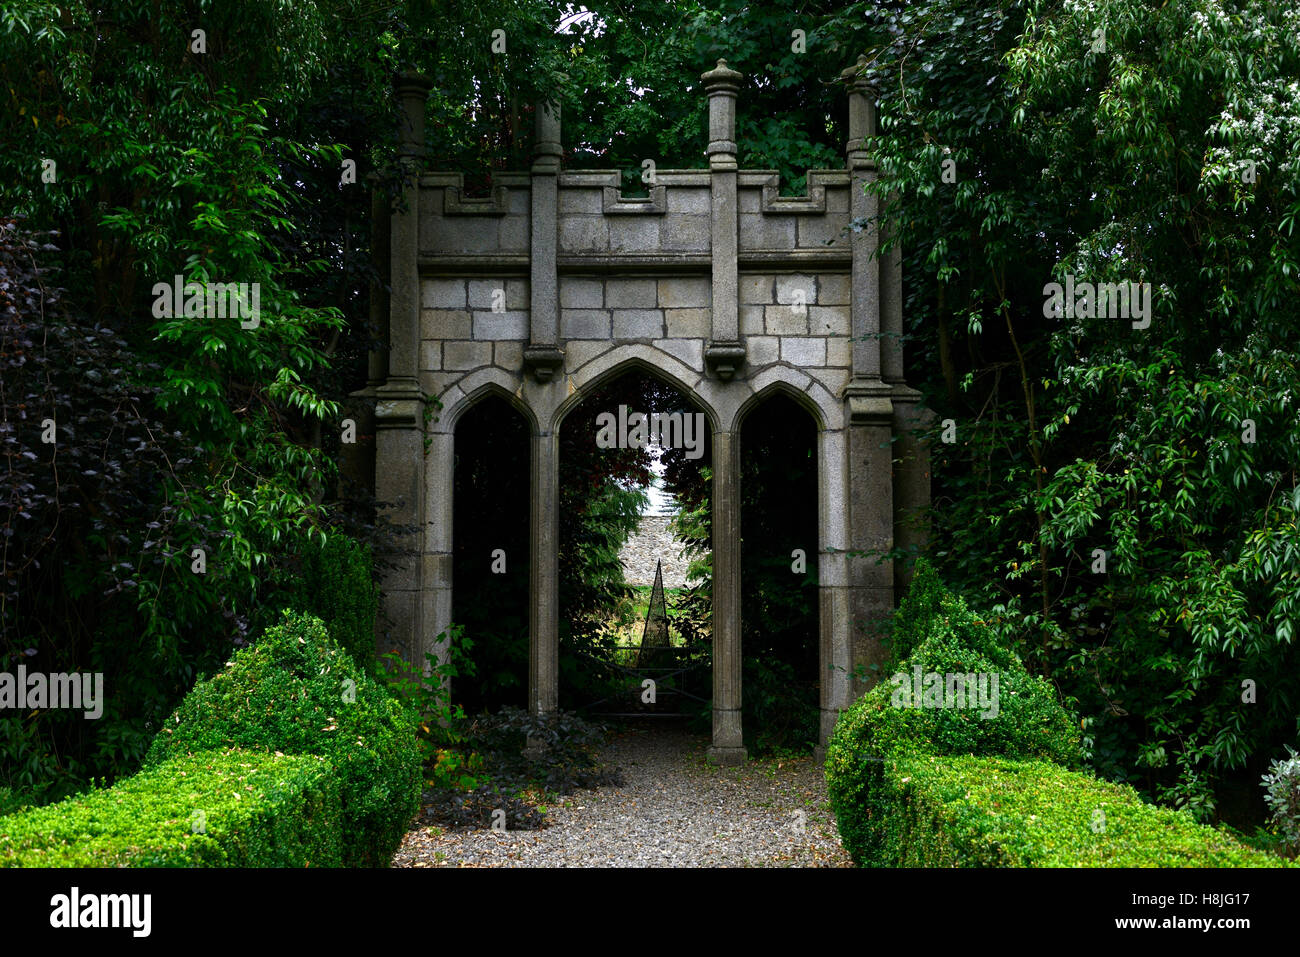 Stone Castellated Gate Architectural Folly Follies Gothic Garden Design  Formal Corke Lodge Bray Wicklow Ireland RM Floral